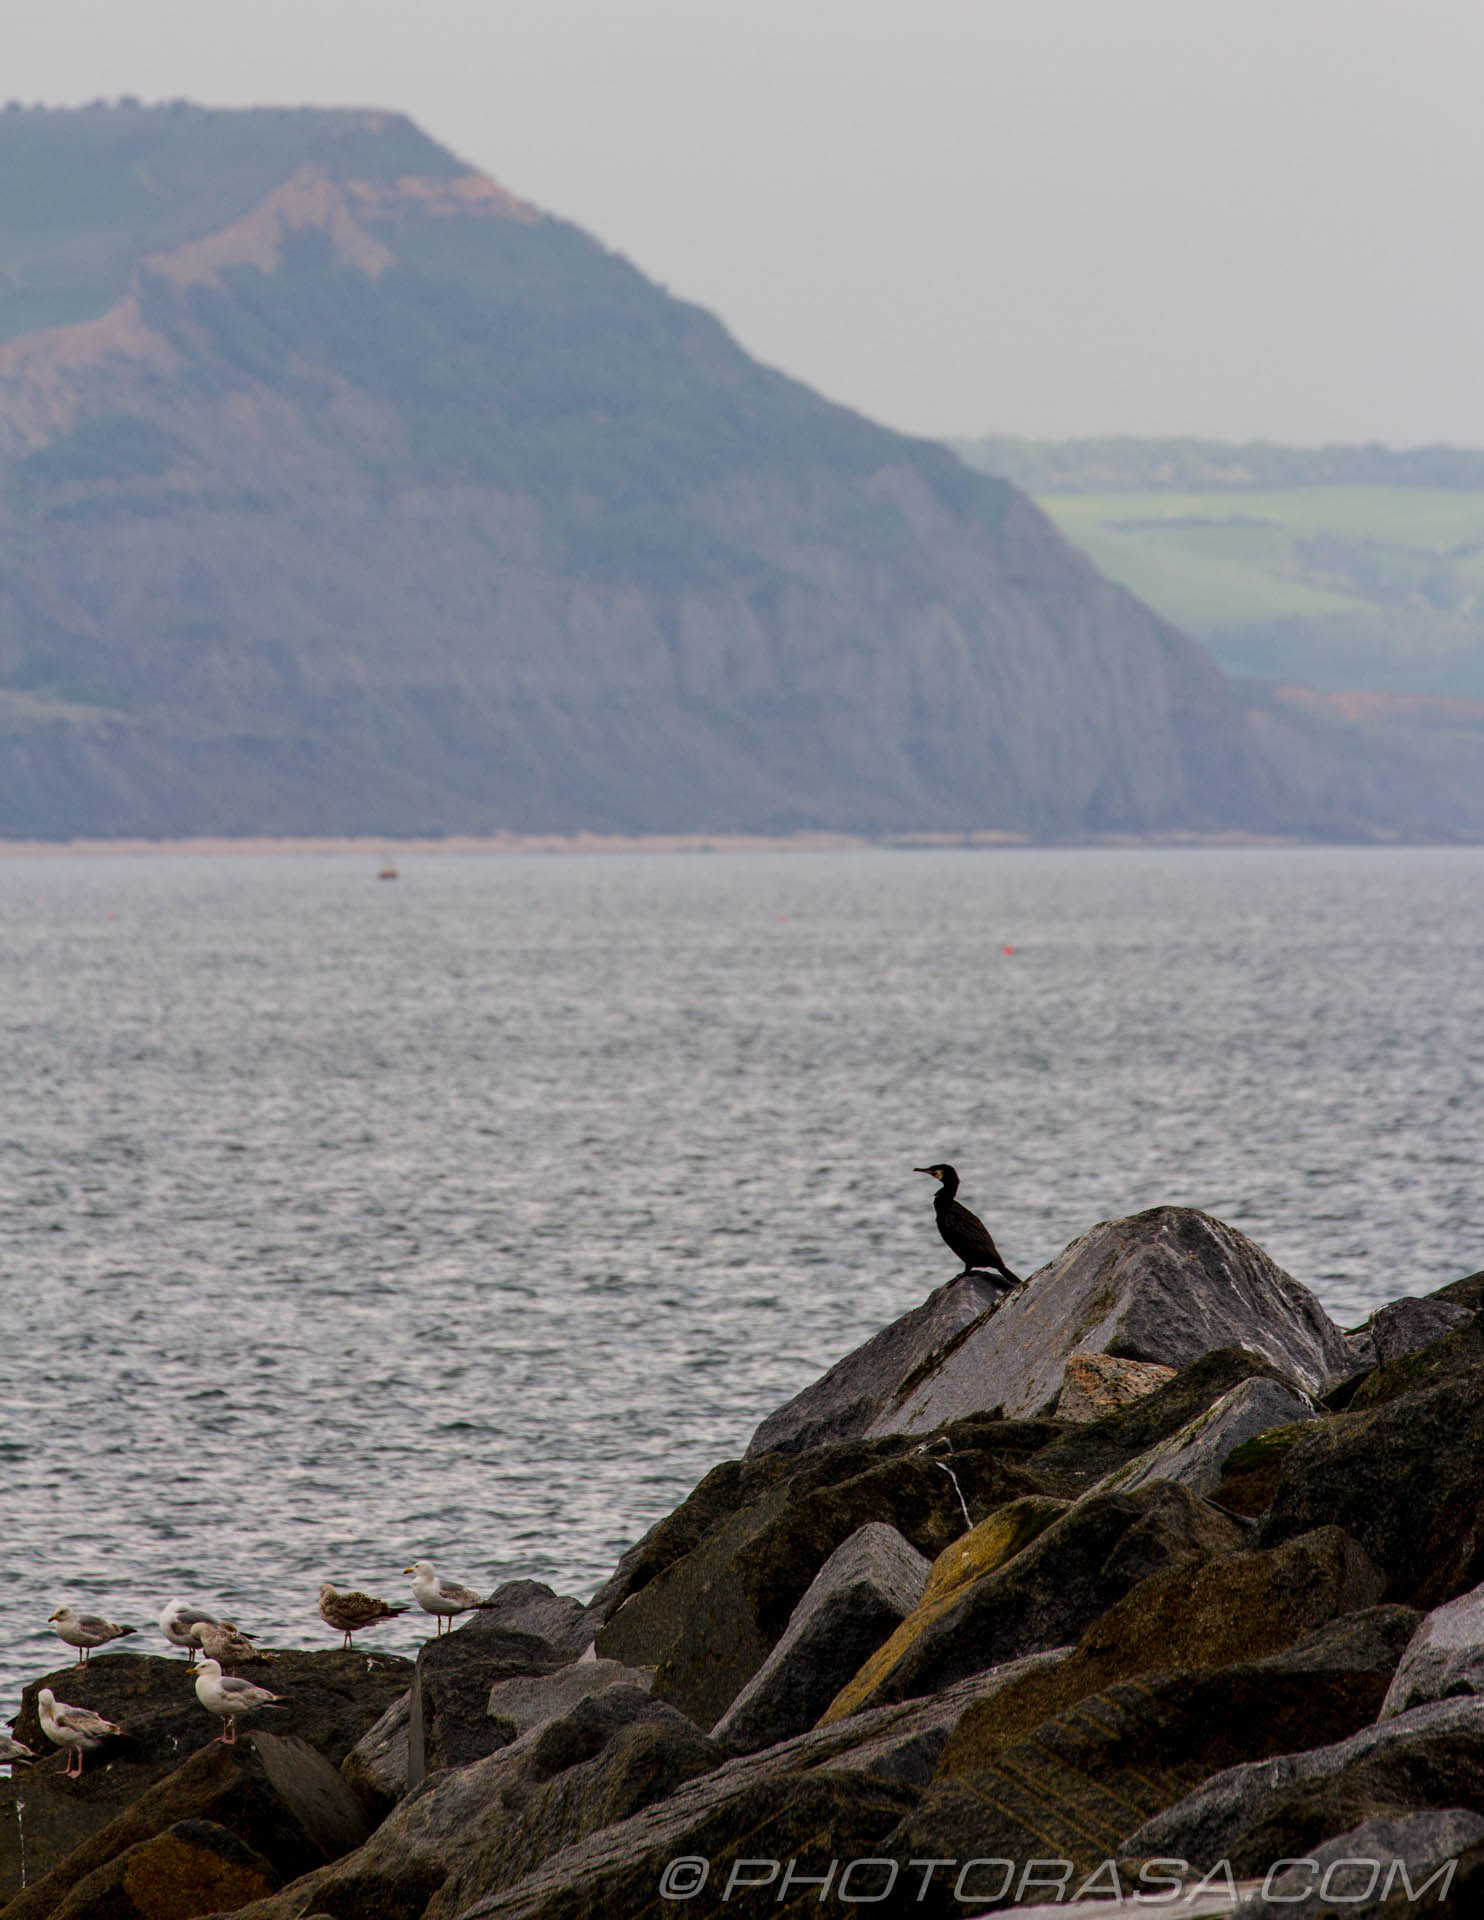 http://photorasa.com/lyme-regis/cormorant-with-cliffs-in-background/